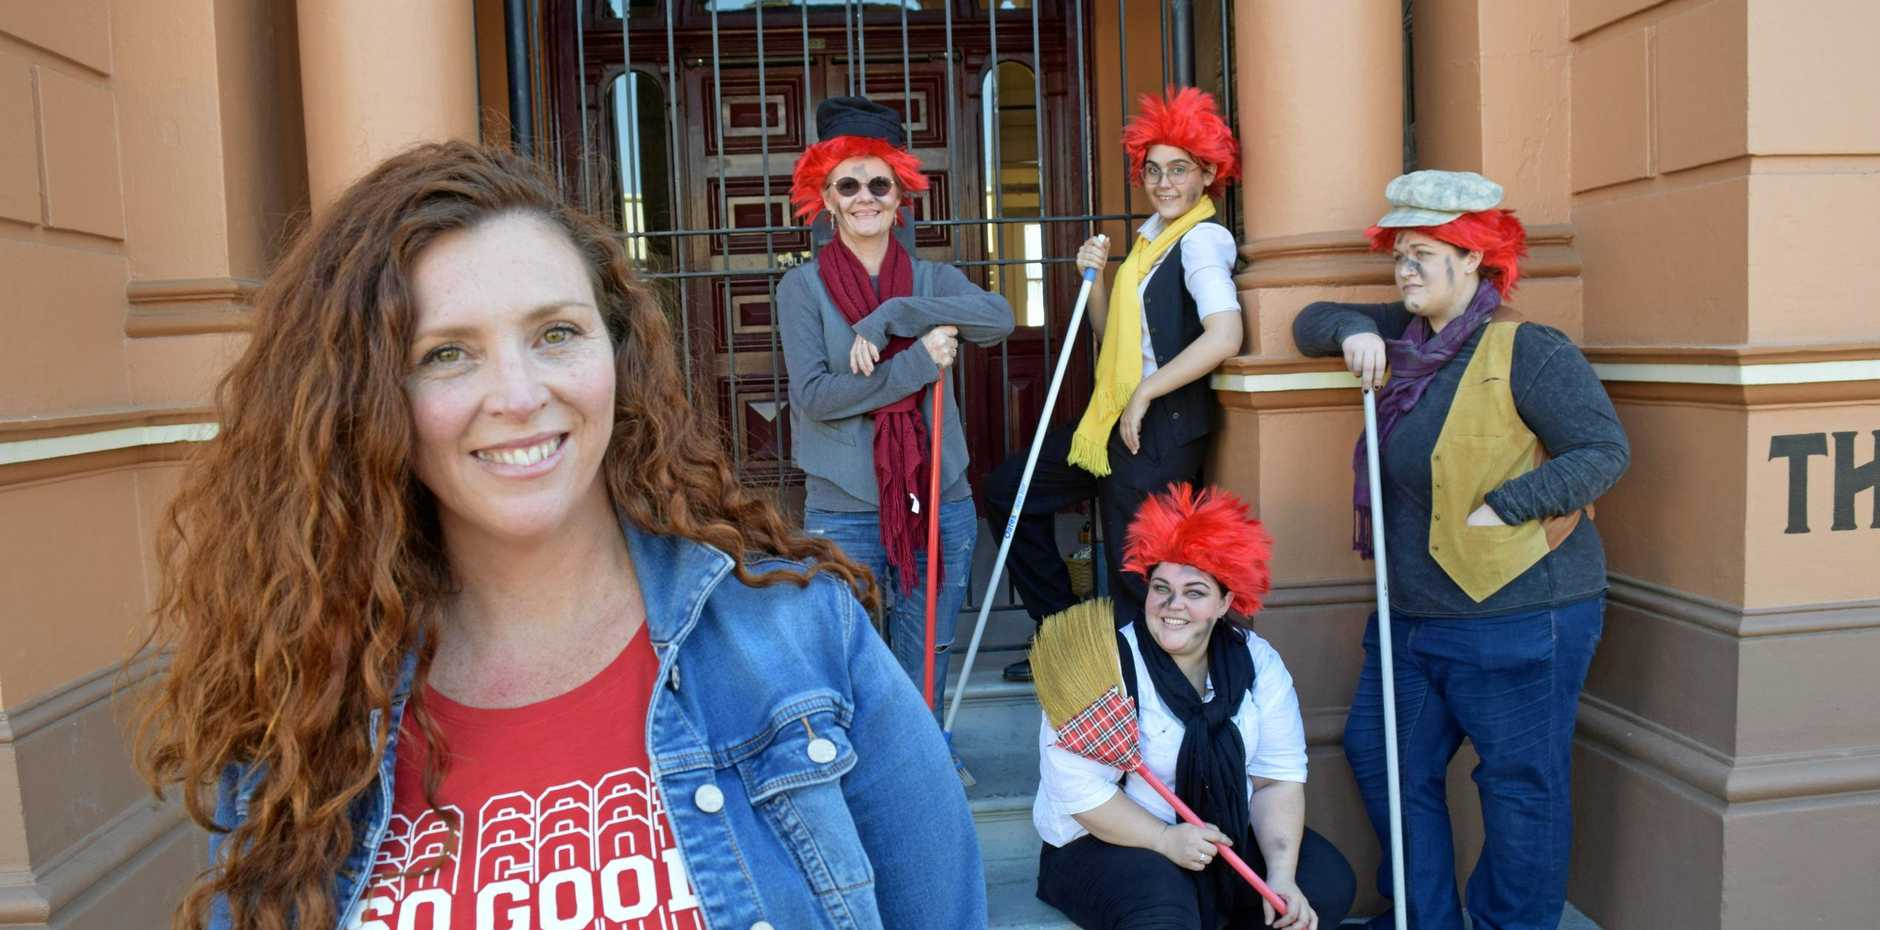 Authentic redhead and partnerships manager of Fraser Coast Tourism and Events Maureen Murphy (left) with (from left) Lynda Eggerling, Sarah Callander, Chasca Thompson and (seated) Katanee Draheim looks forward to encouraging the region to vote for a Redhead Festival as part of Wotif's Festival of Wot?